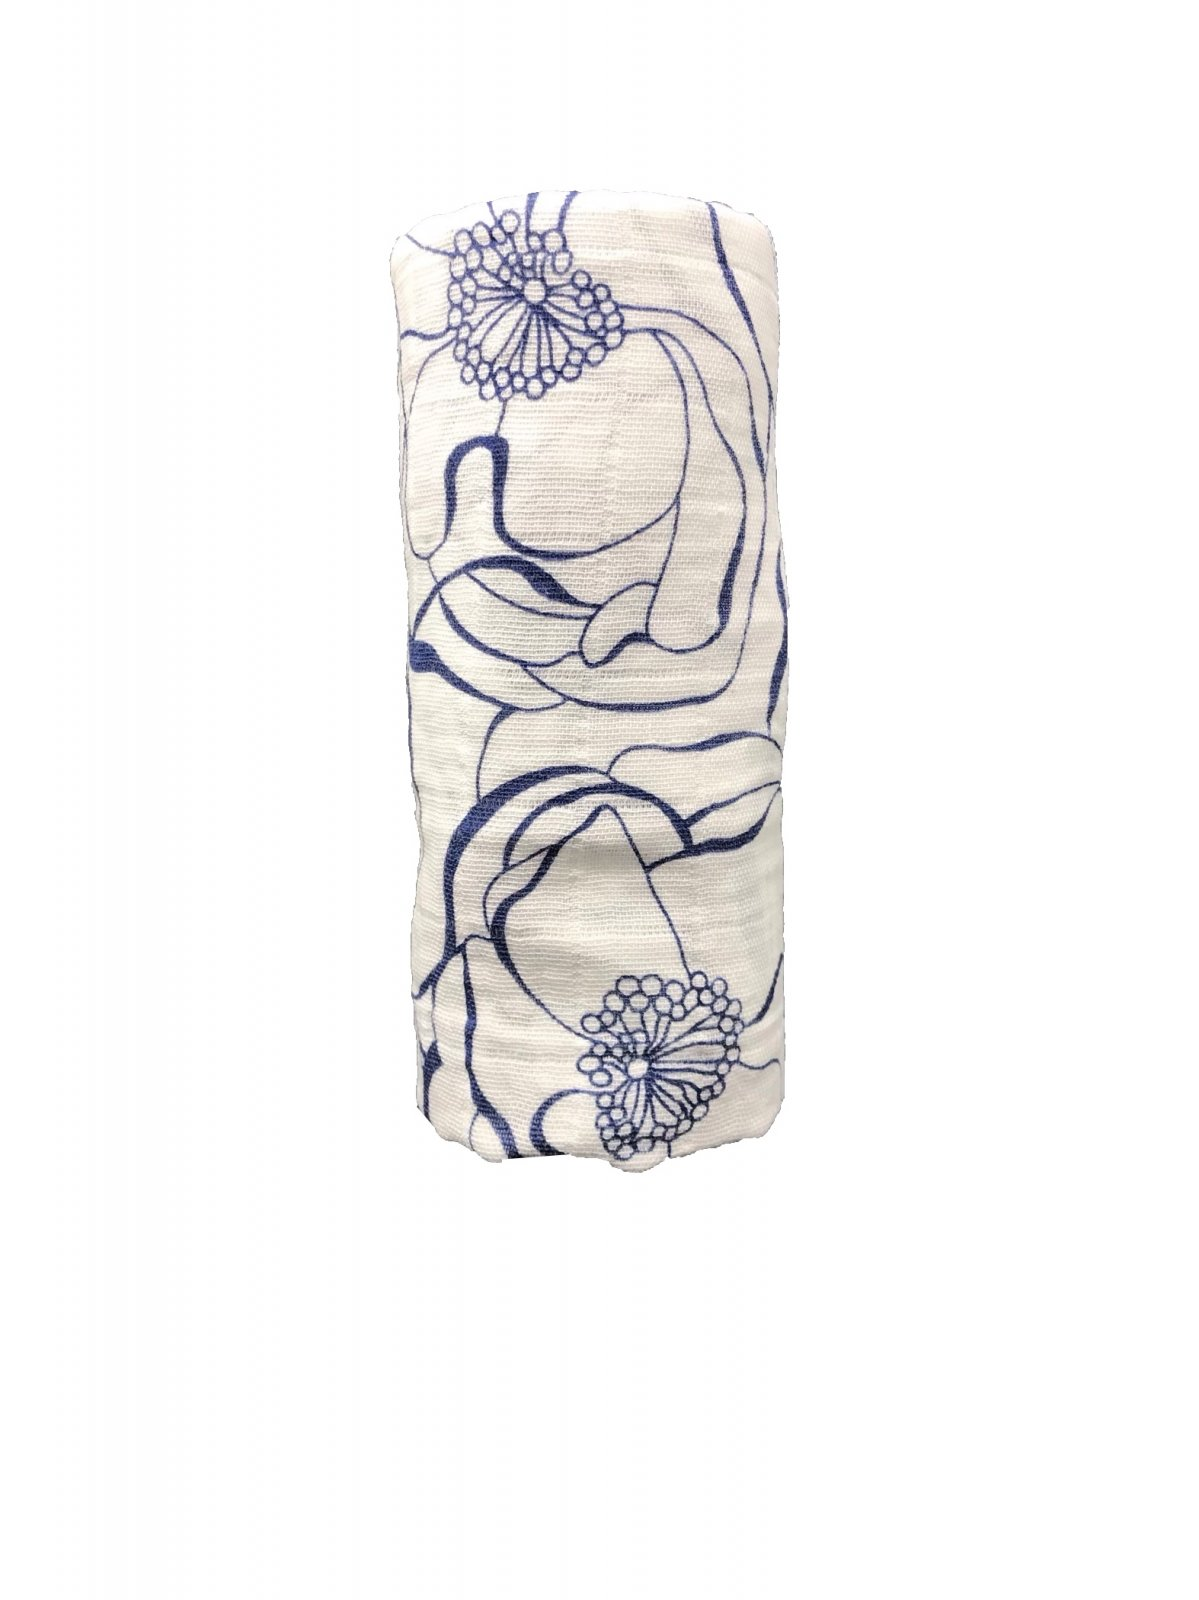 Bouquet Cobalt Swaddle